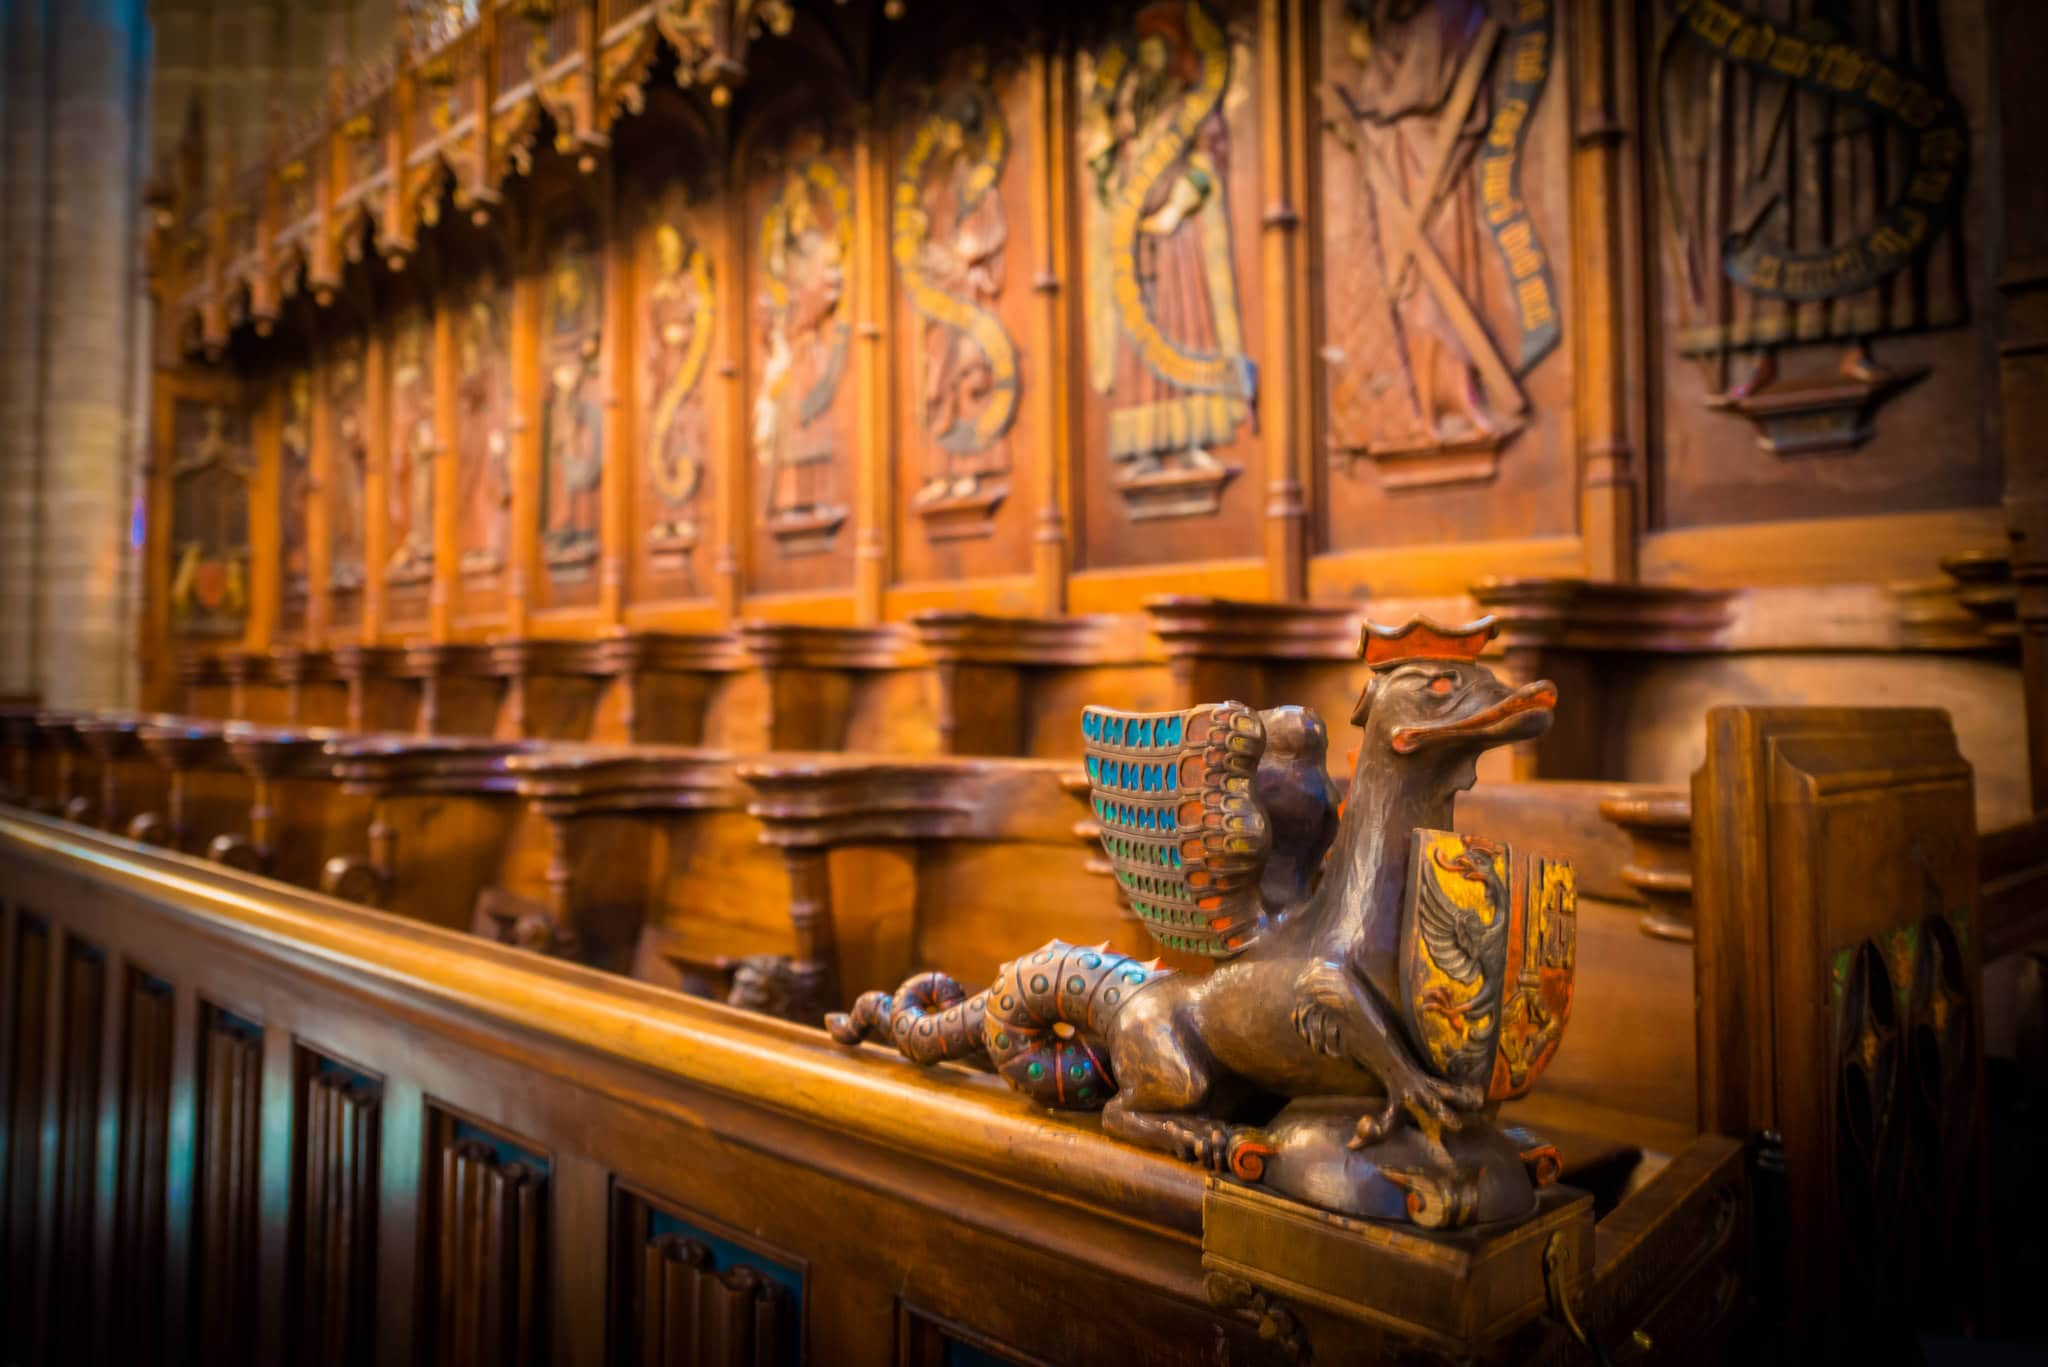 This is a wooden figurine of a small dragon, found in the ancient St. Pierre Cathedral in Geneva.